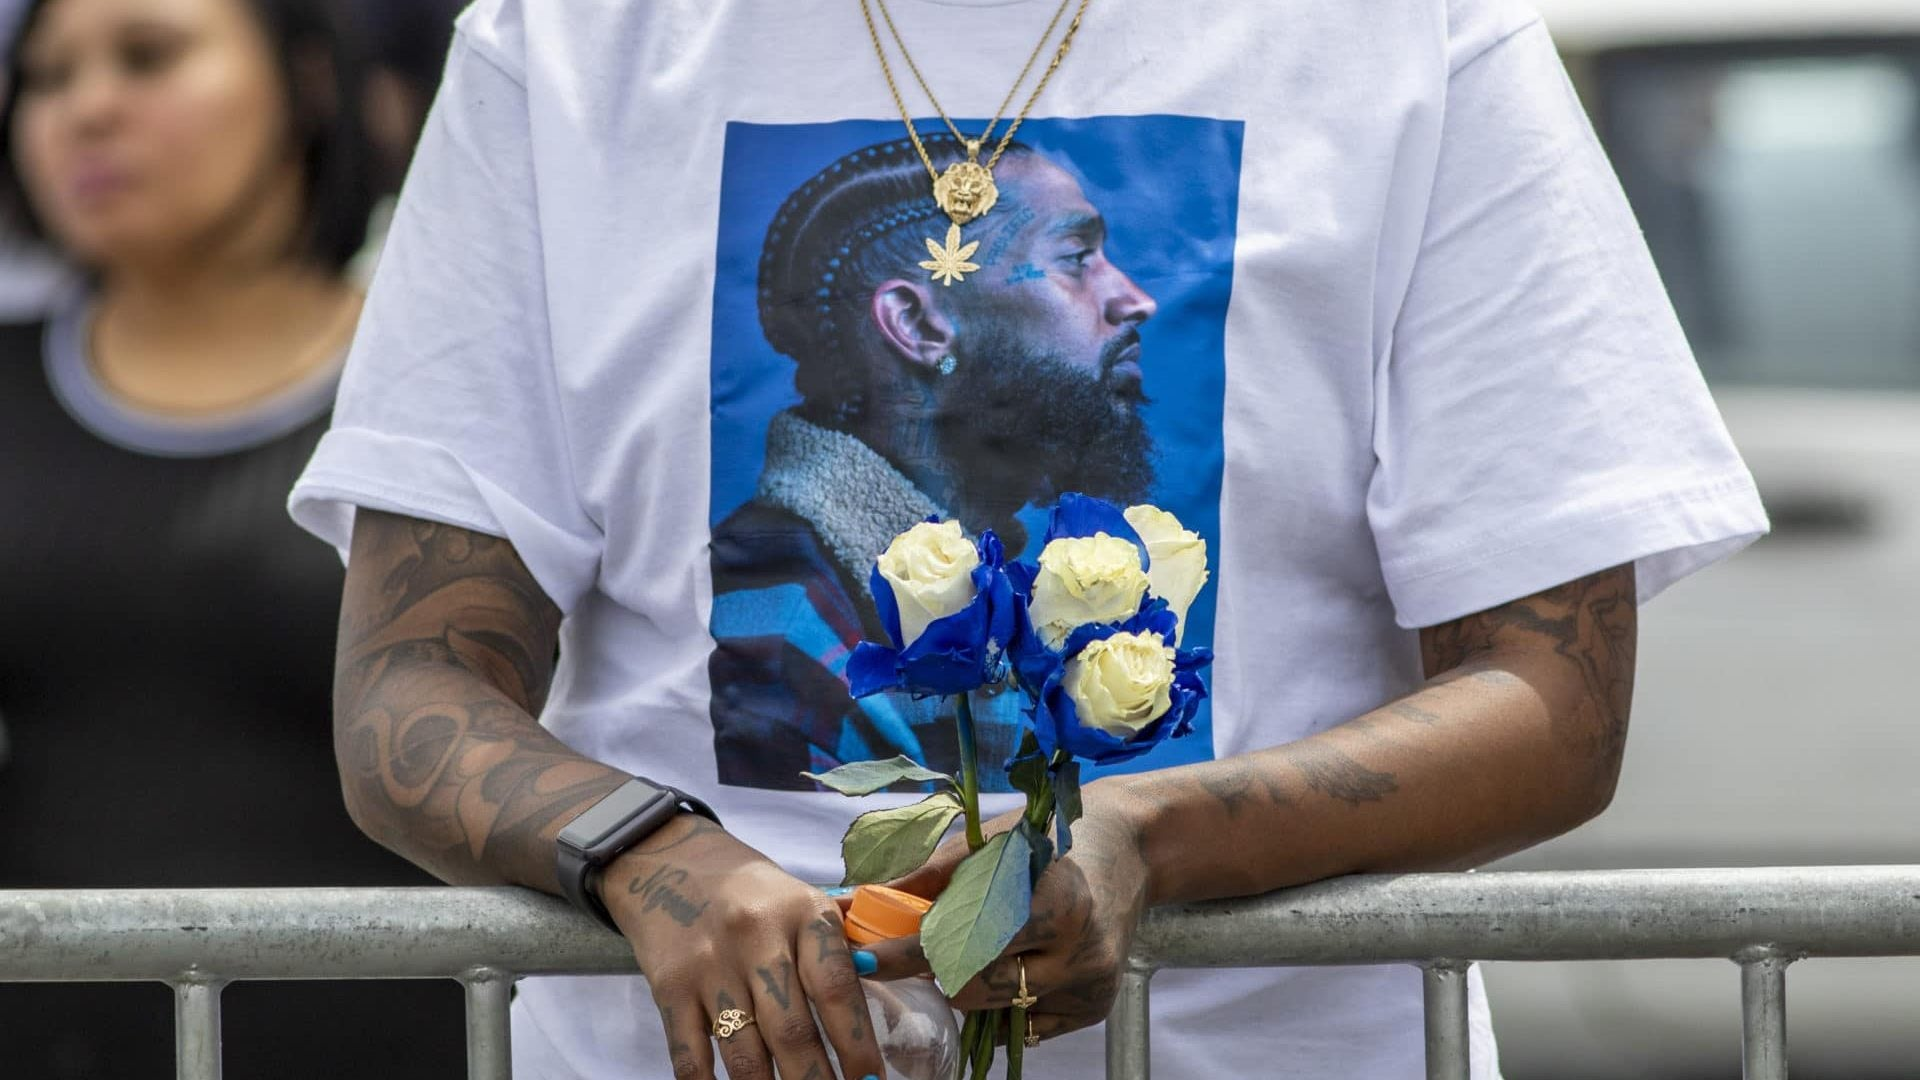 1 Dead, Others Injured After Drive-By Strikes Nipsey Hussle Memorial Procession: Police